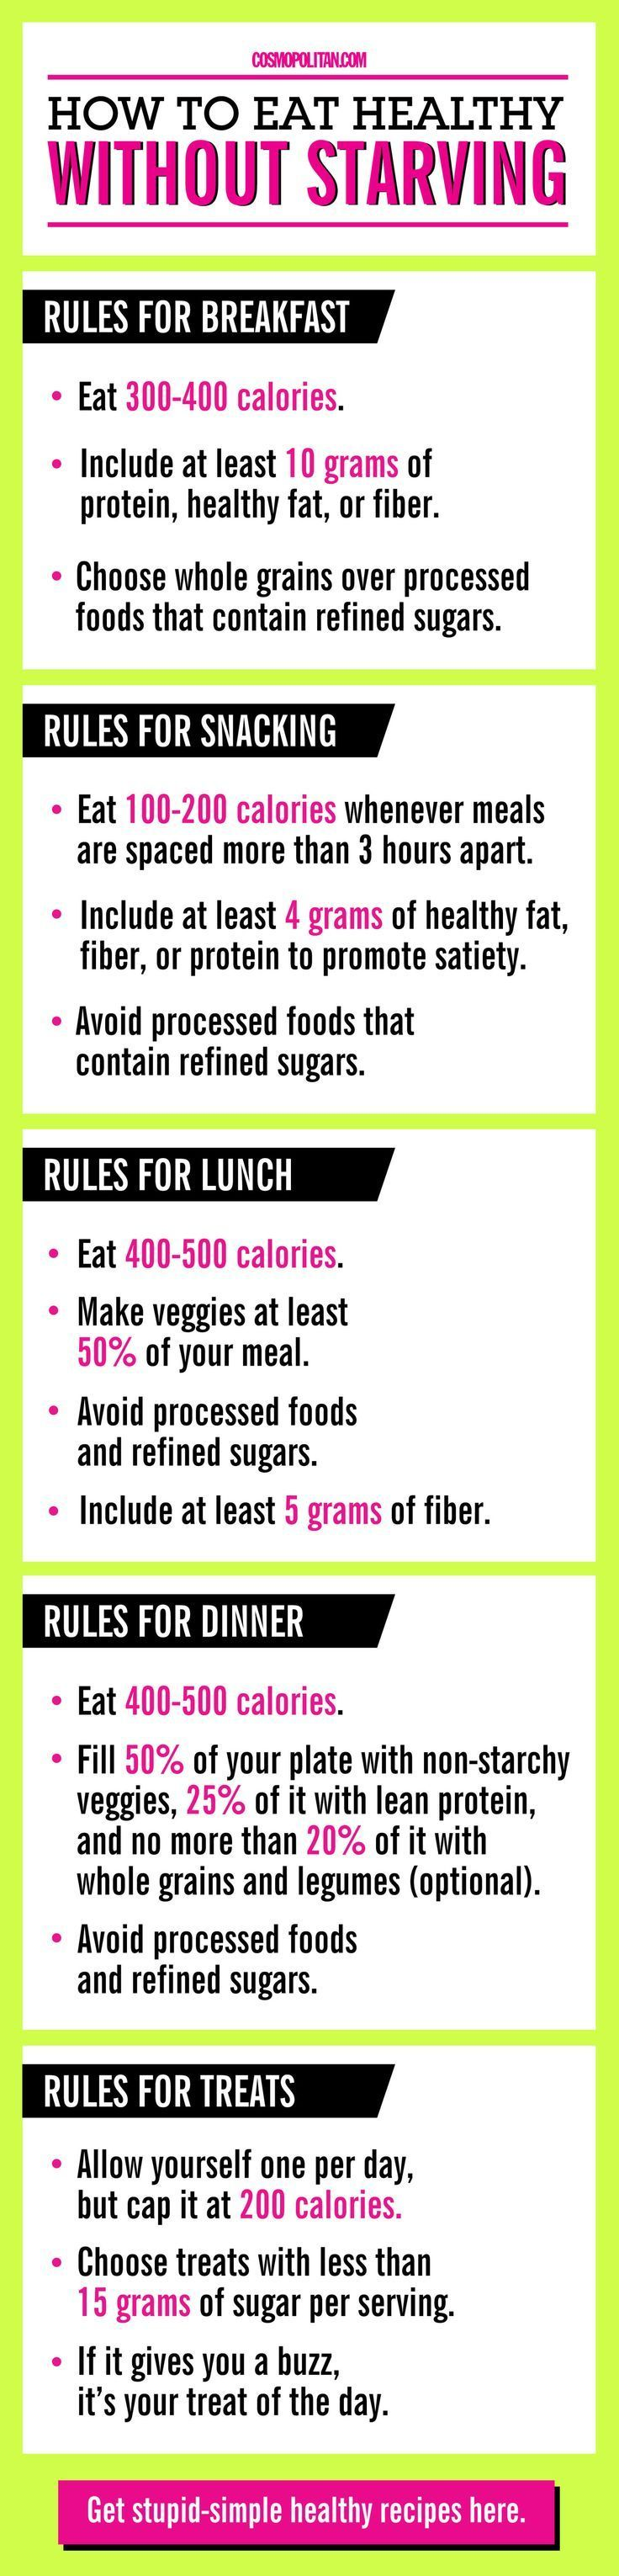 "16 Healthy Eating Rules You Should Always Follow - <a href="""" rel=""nofollow"" target=""_blank""></a>"